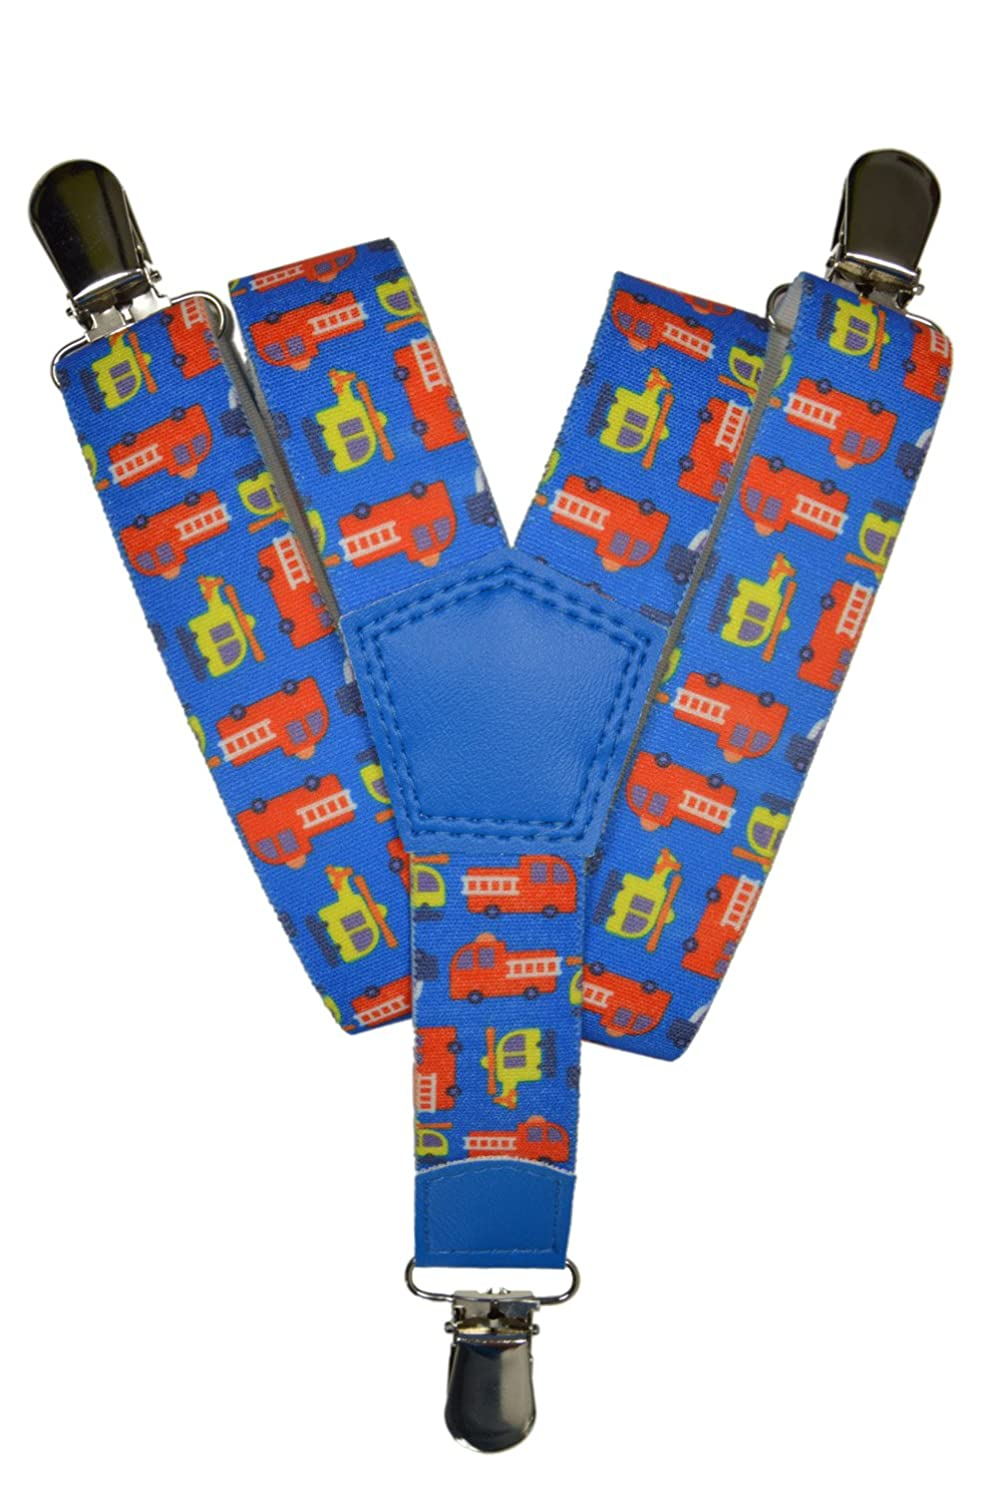 Childrens 1-5 Years Elasticated Clip on Braces / Suspenders with Fire Engine Design KIDSBRACESJfire-dblue